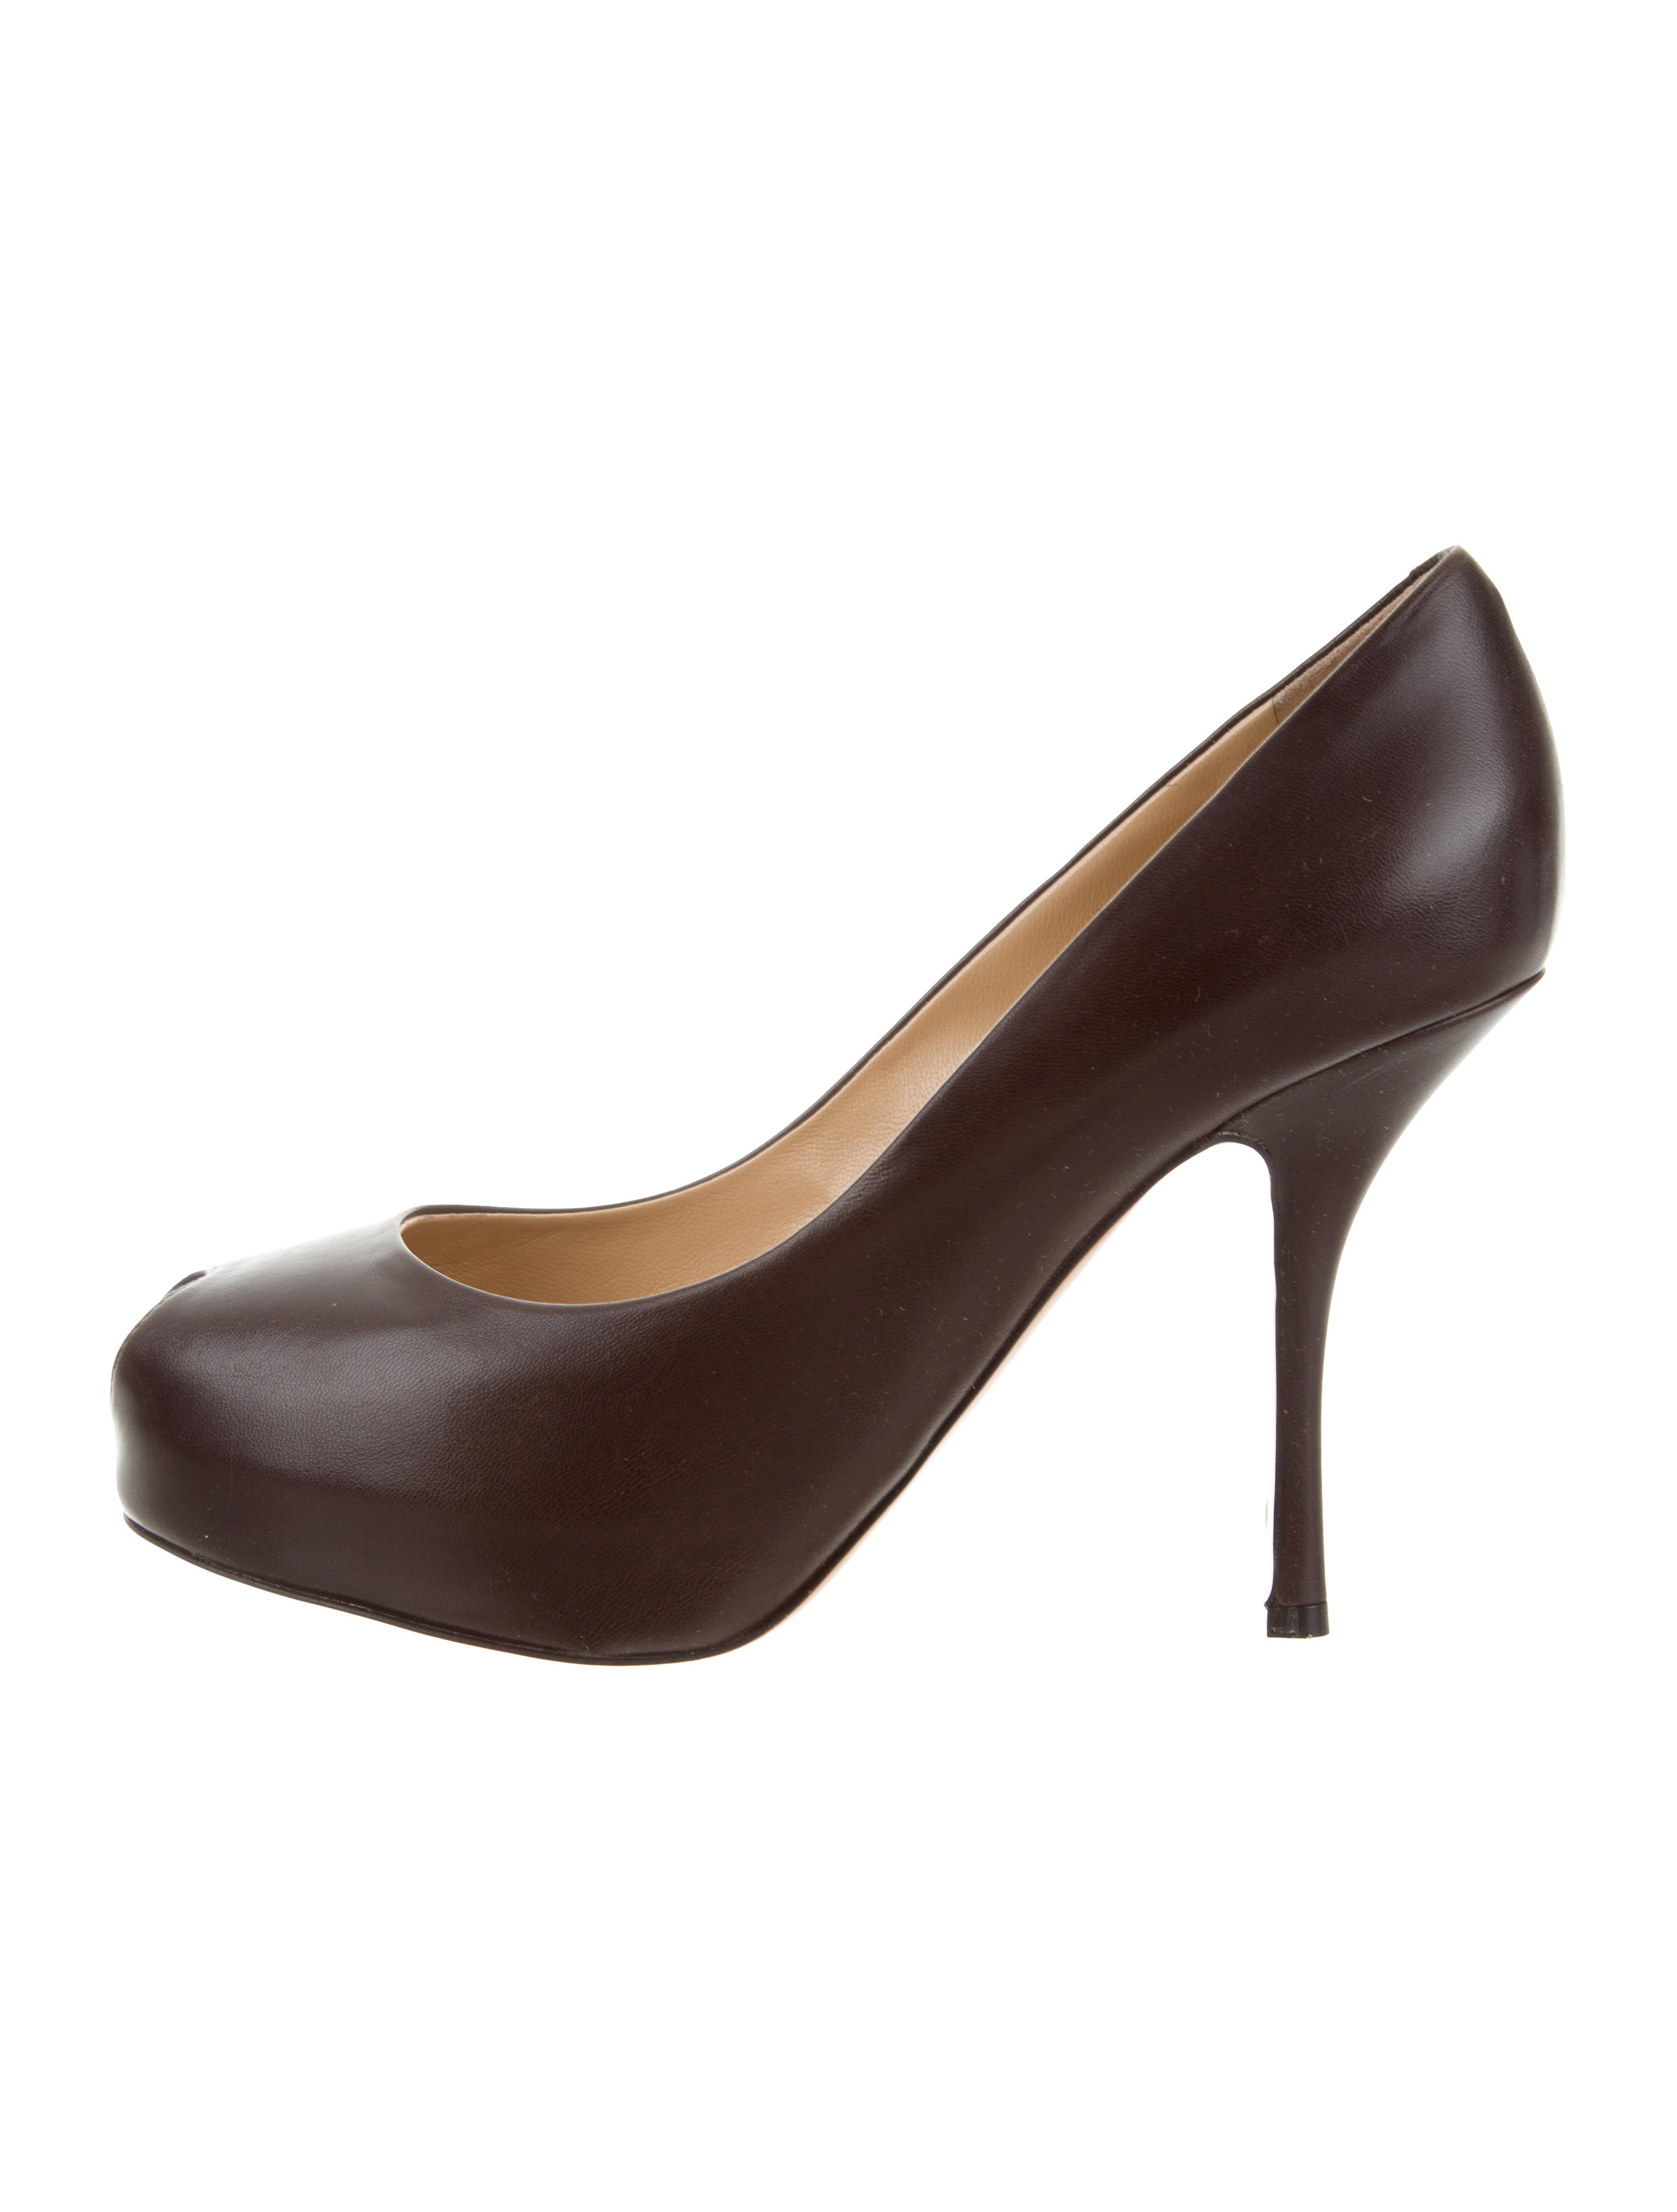 purchase sale online buy cheap excellent Giuseppe Zanotti Leather Platform Pumps w/ Tags discount latest lowest price cheap price EQnXteQ